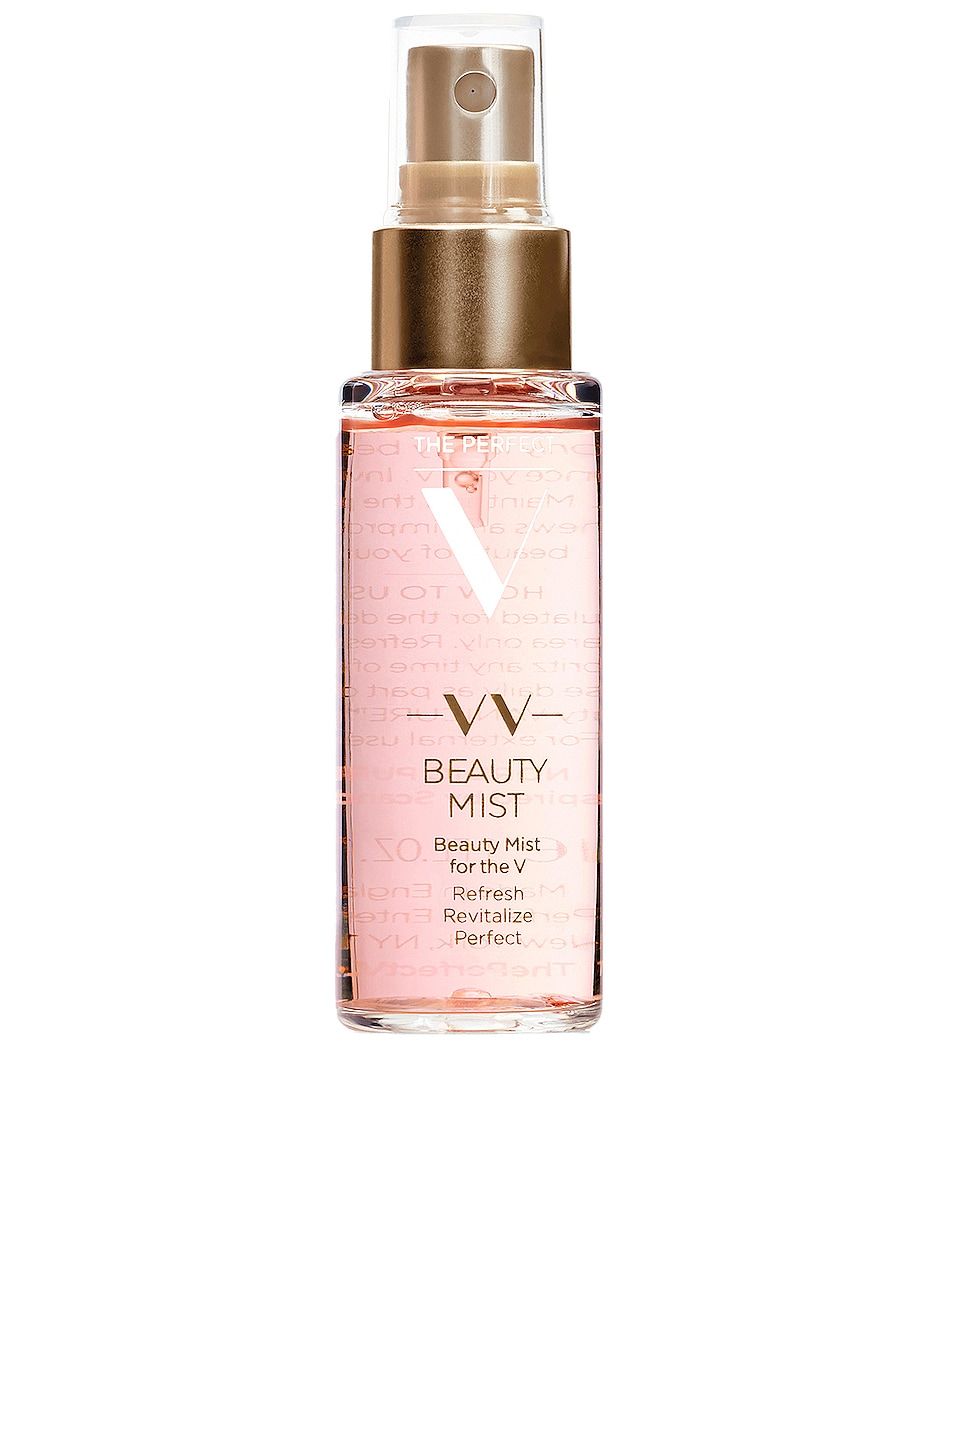 THE PERFECT V Vv Beauty Mist in Beauty: Na